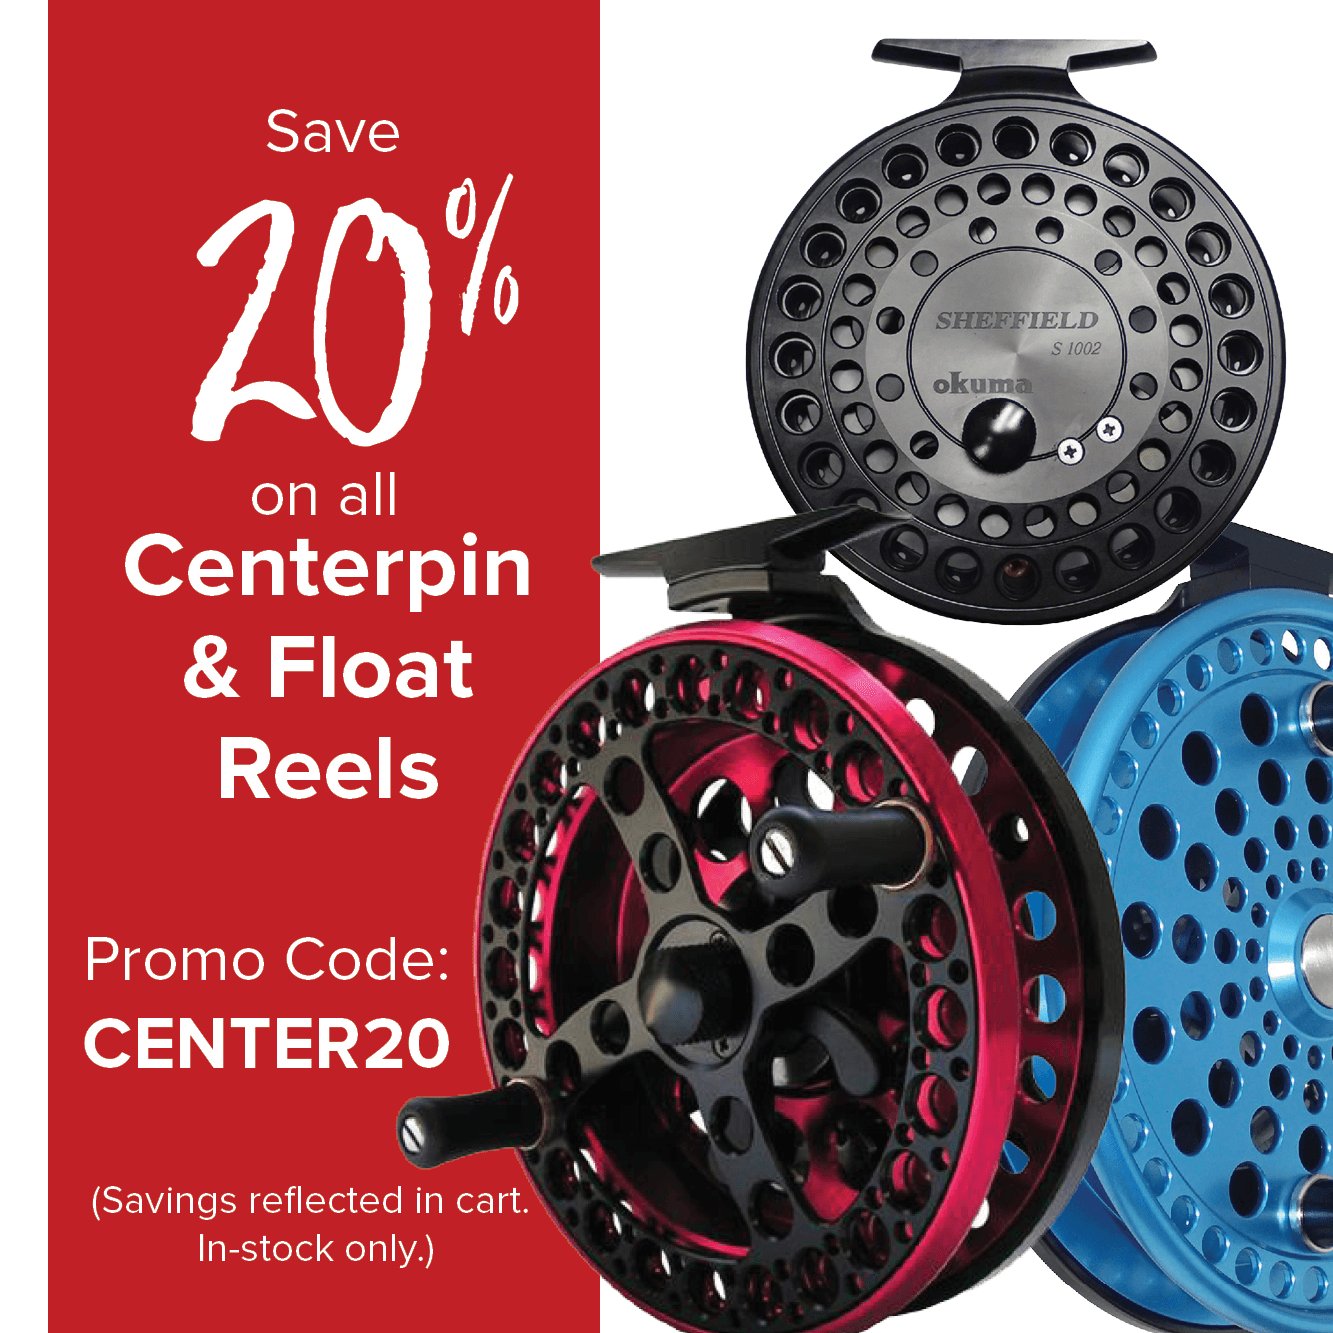 Save 20% on all Centerpin & Float Reels